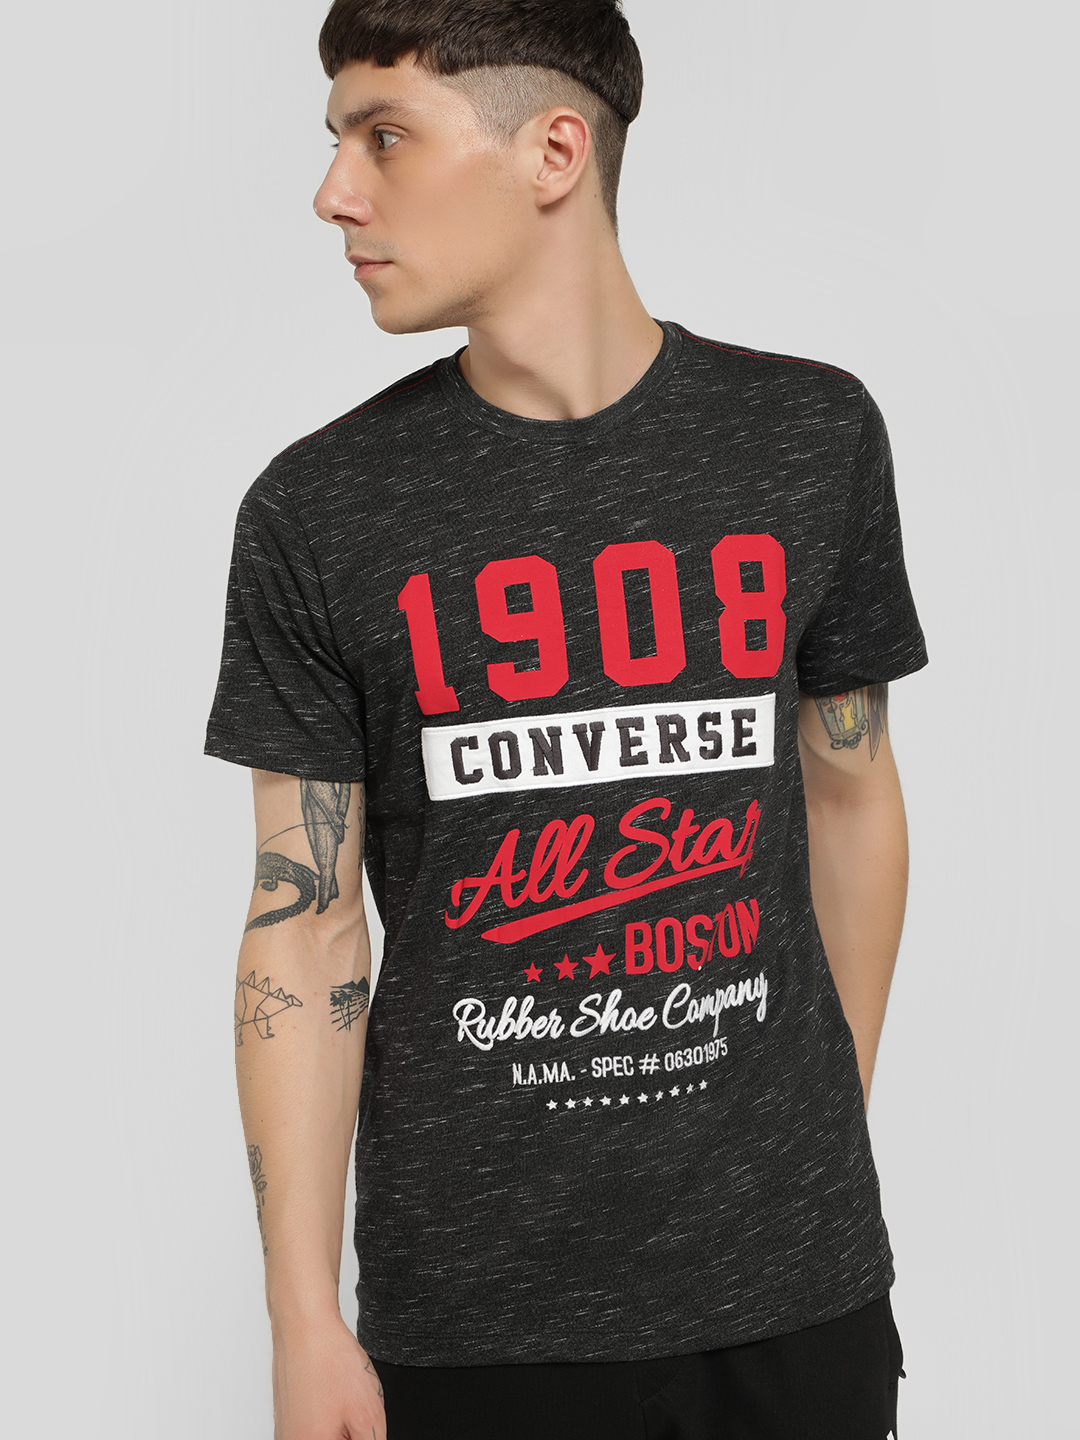 Converse Black Embroidered Patch Slogan Print T-Shirt 1